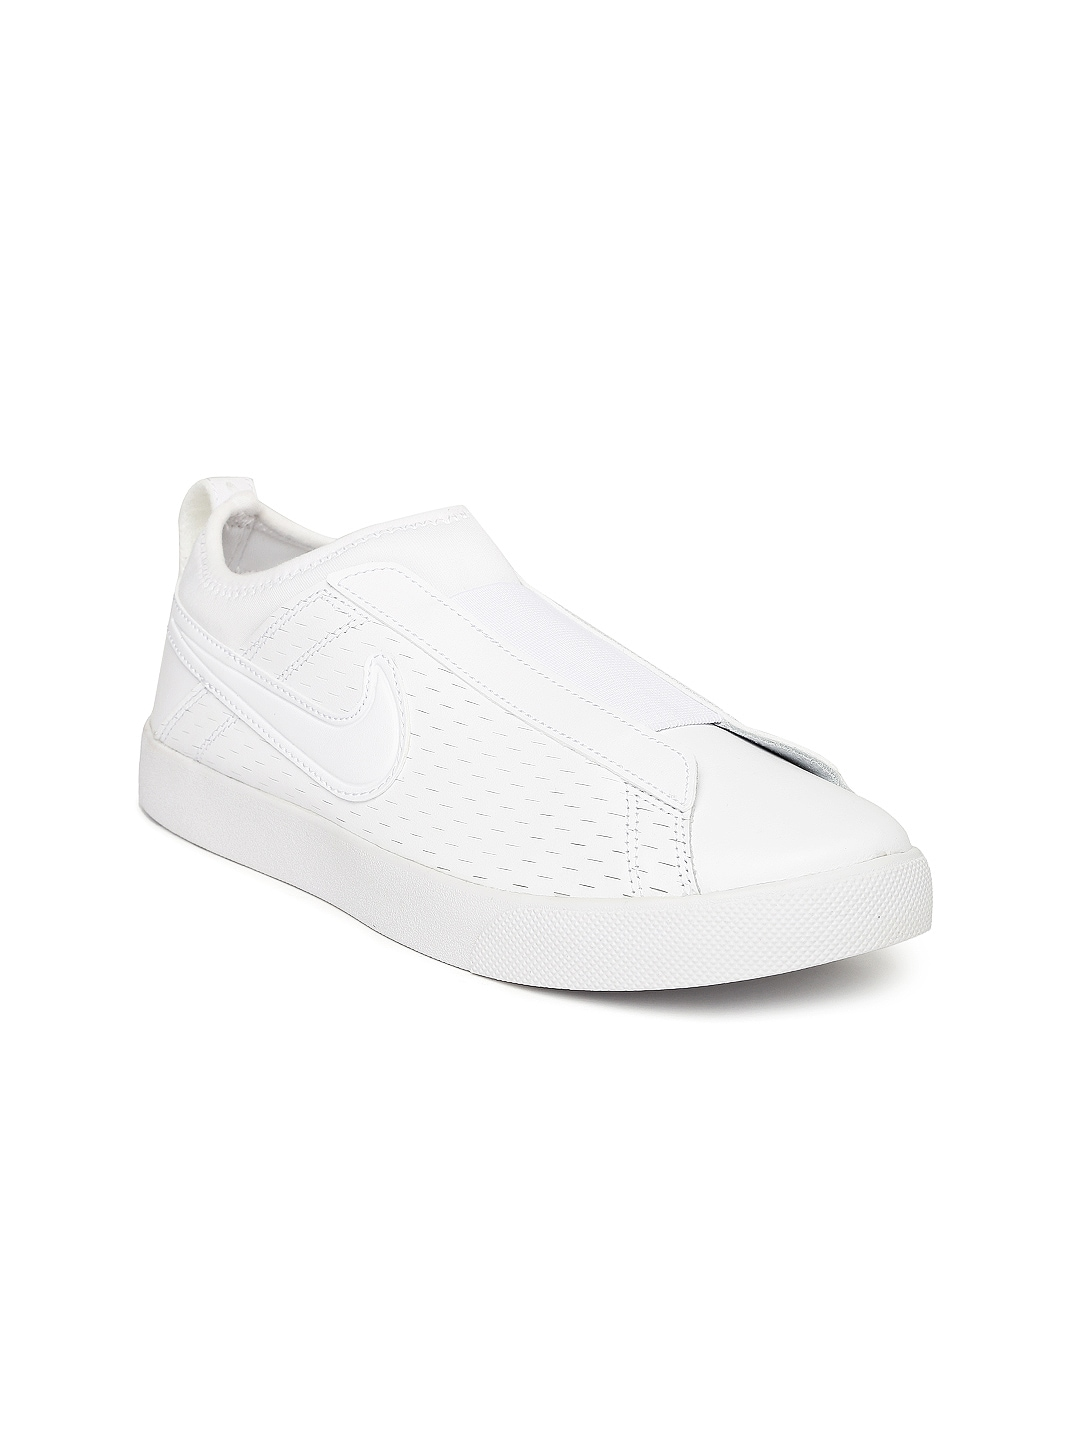 Nike Slip On Shoes - Buy Nike Slip On Shoes online in India 54c116a8c